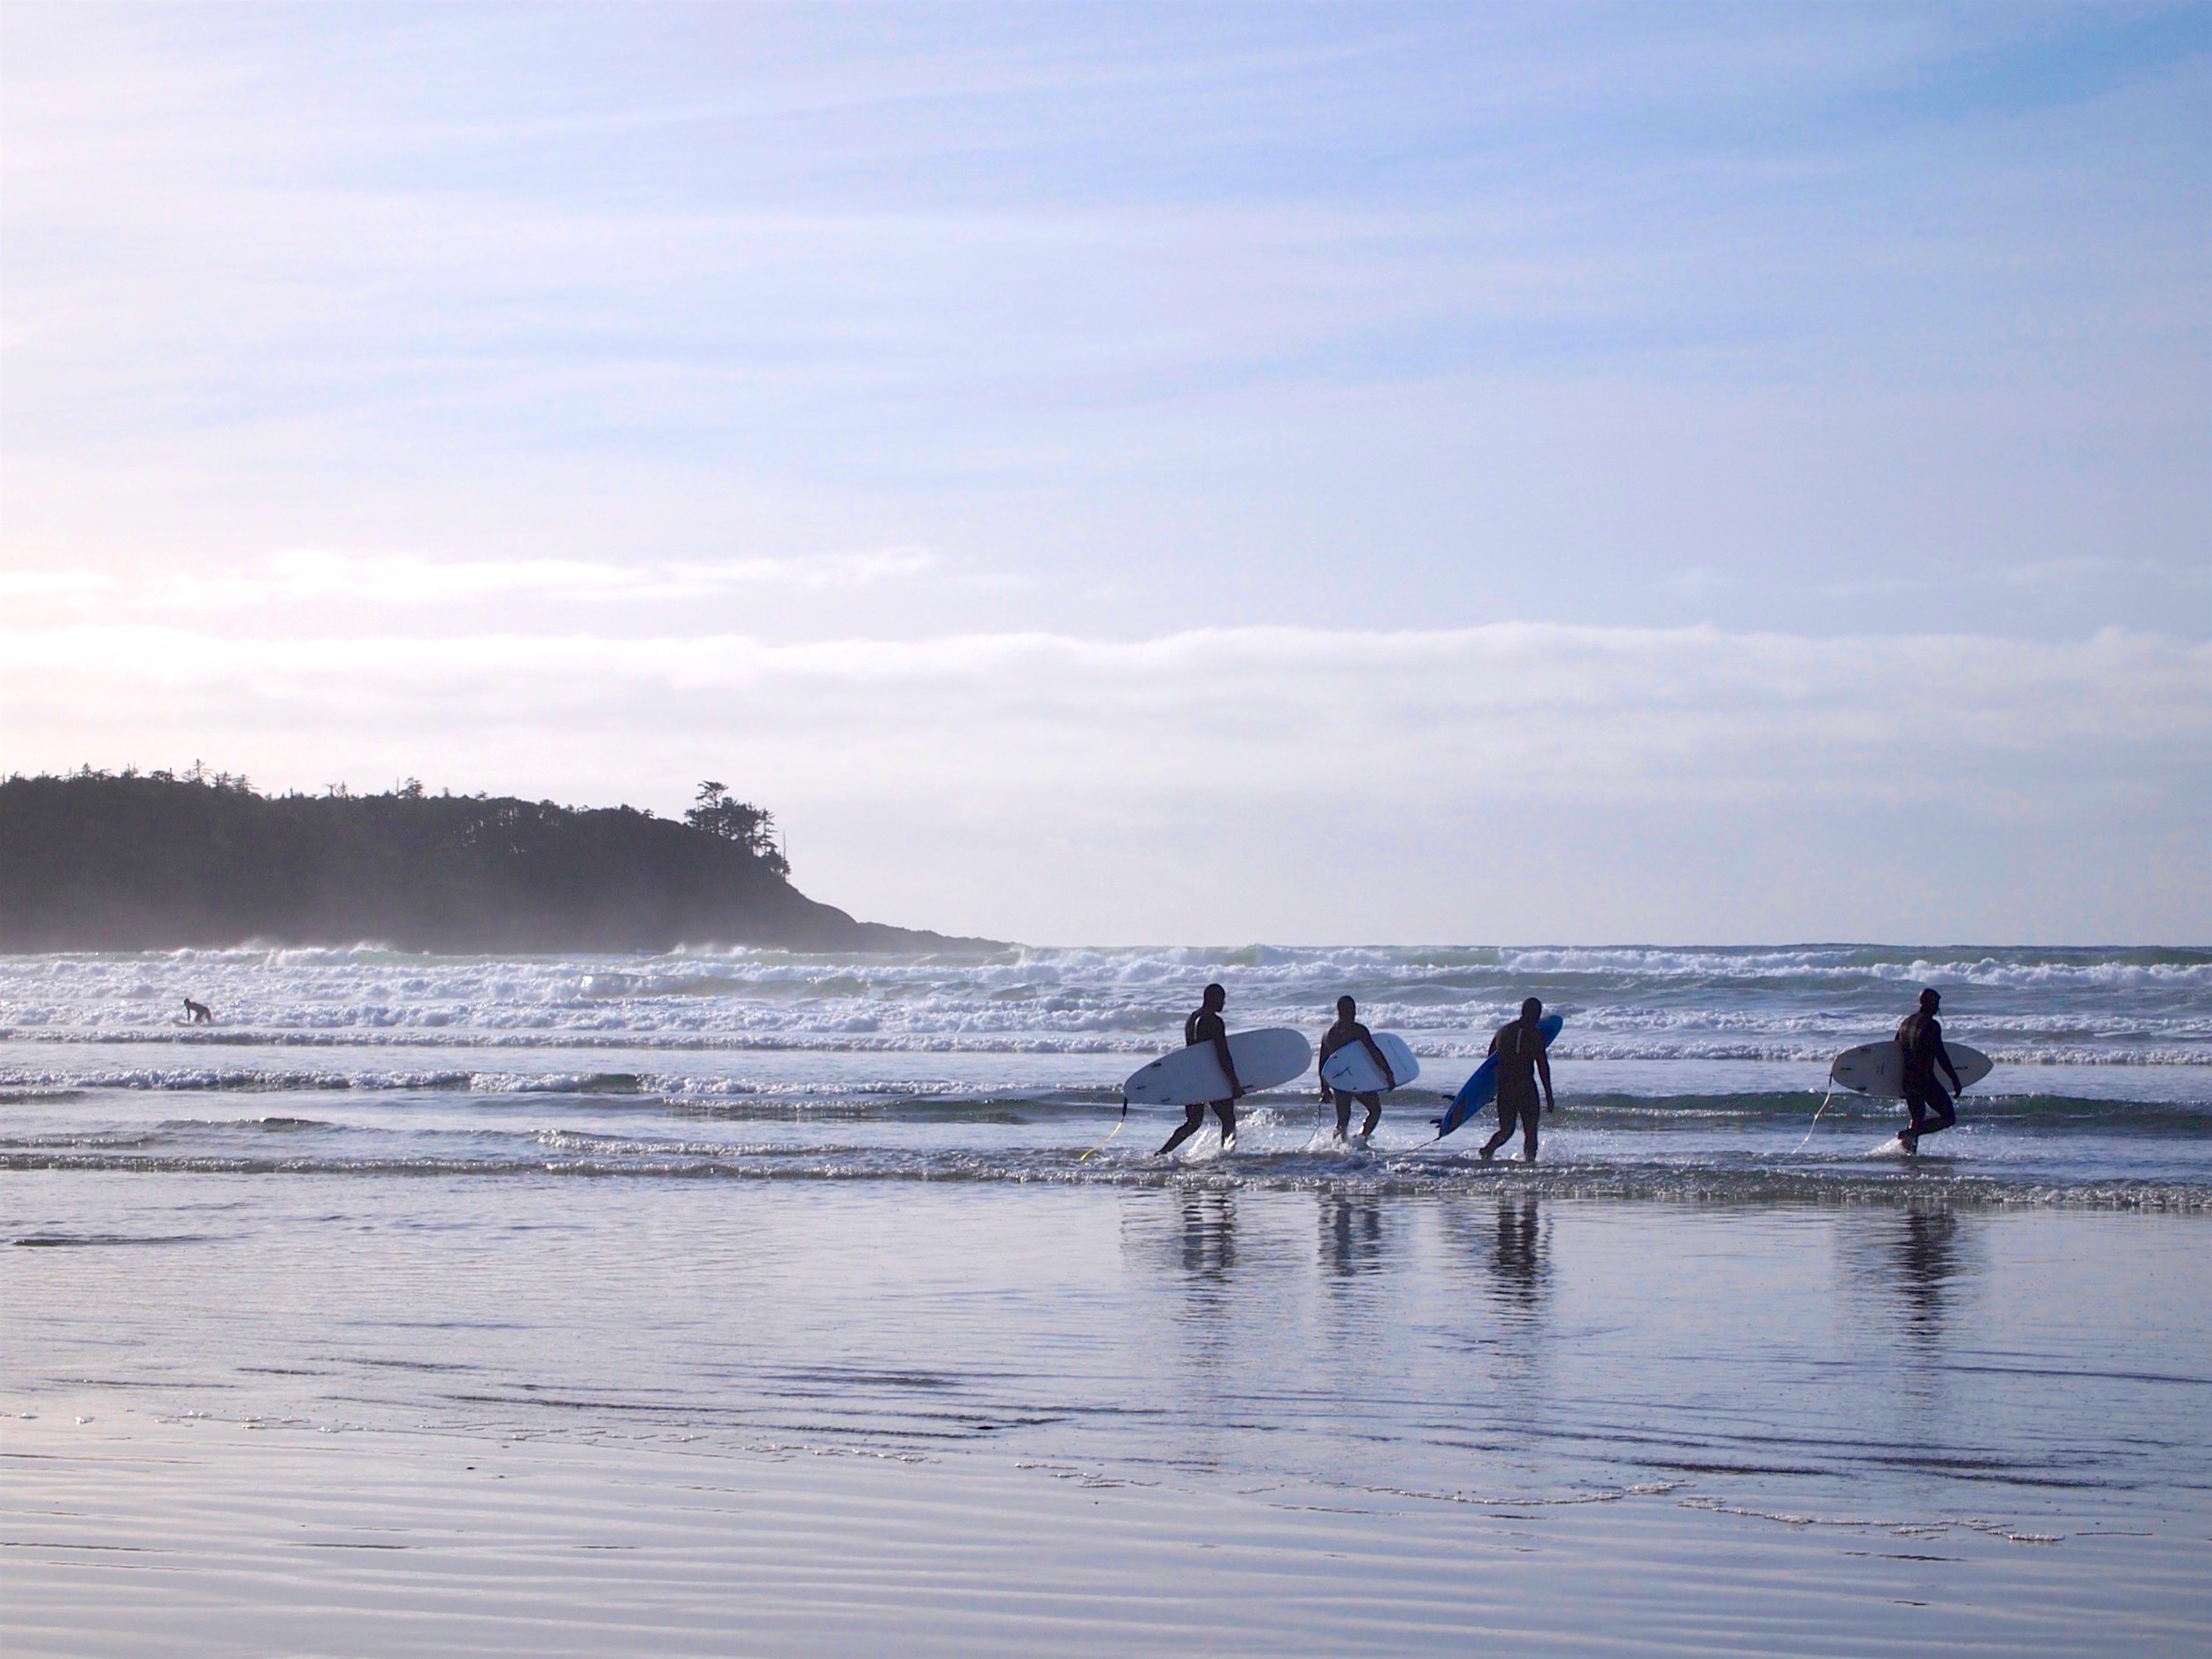 Watching surfers about to brave the waves at Cox Bay in Tofino, BC.